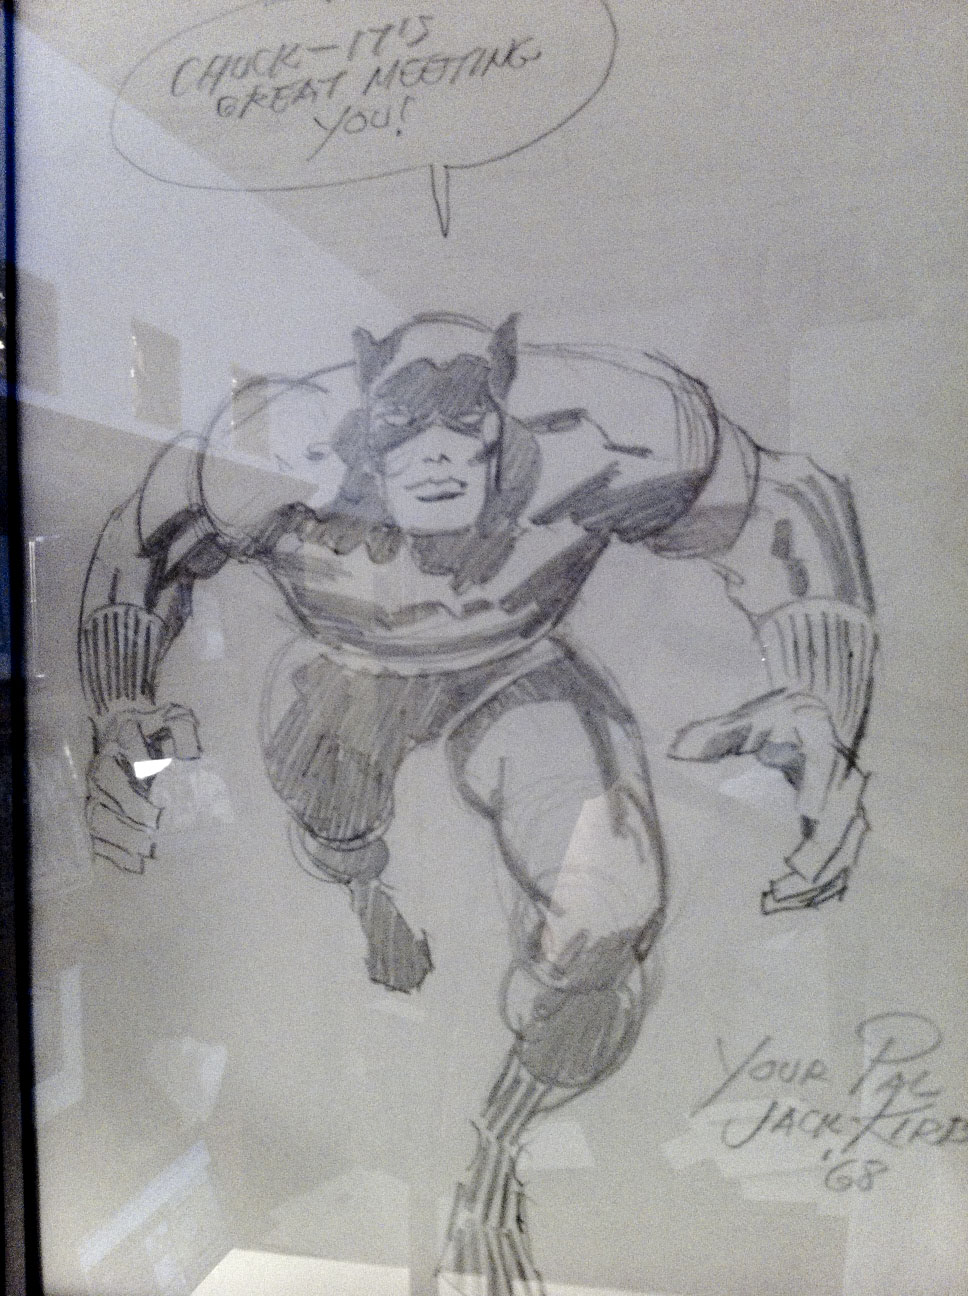 1968 Jack Kirby Black Panther pencil sketch given to Chuck Greaves.